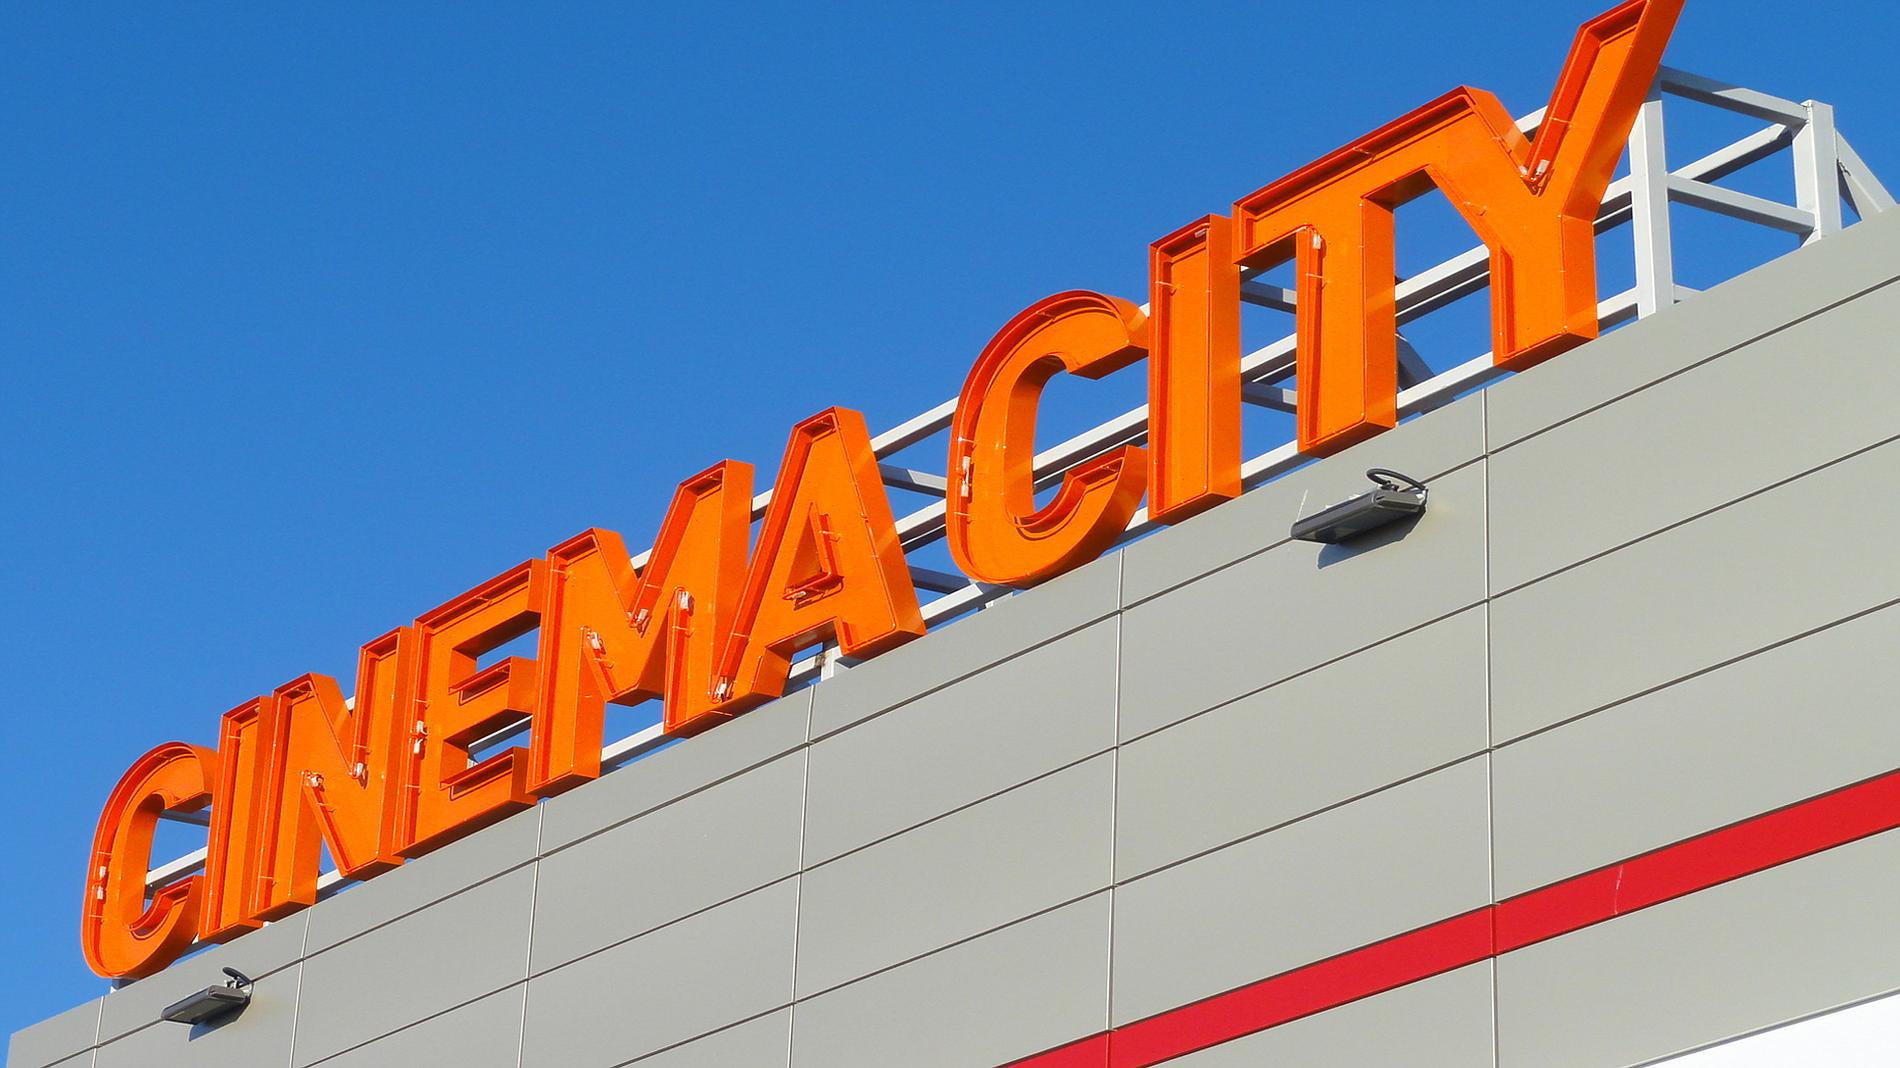 Cinema City channel letters